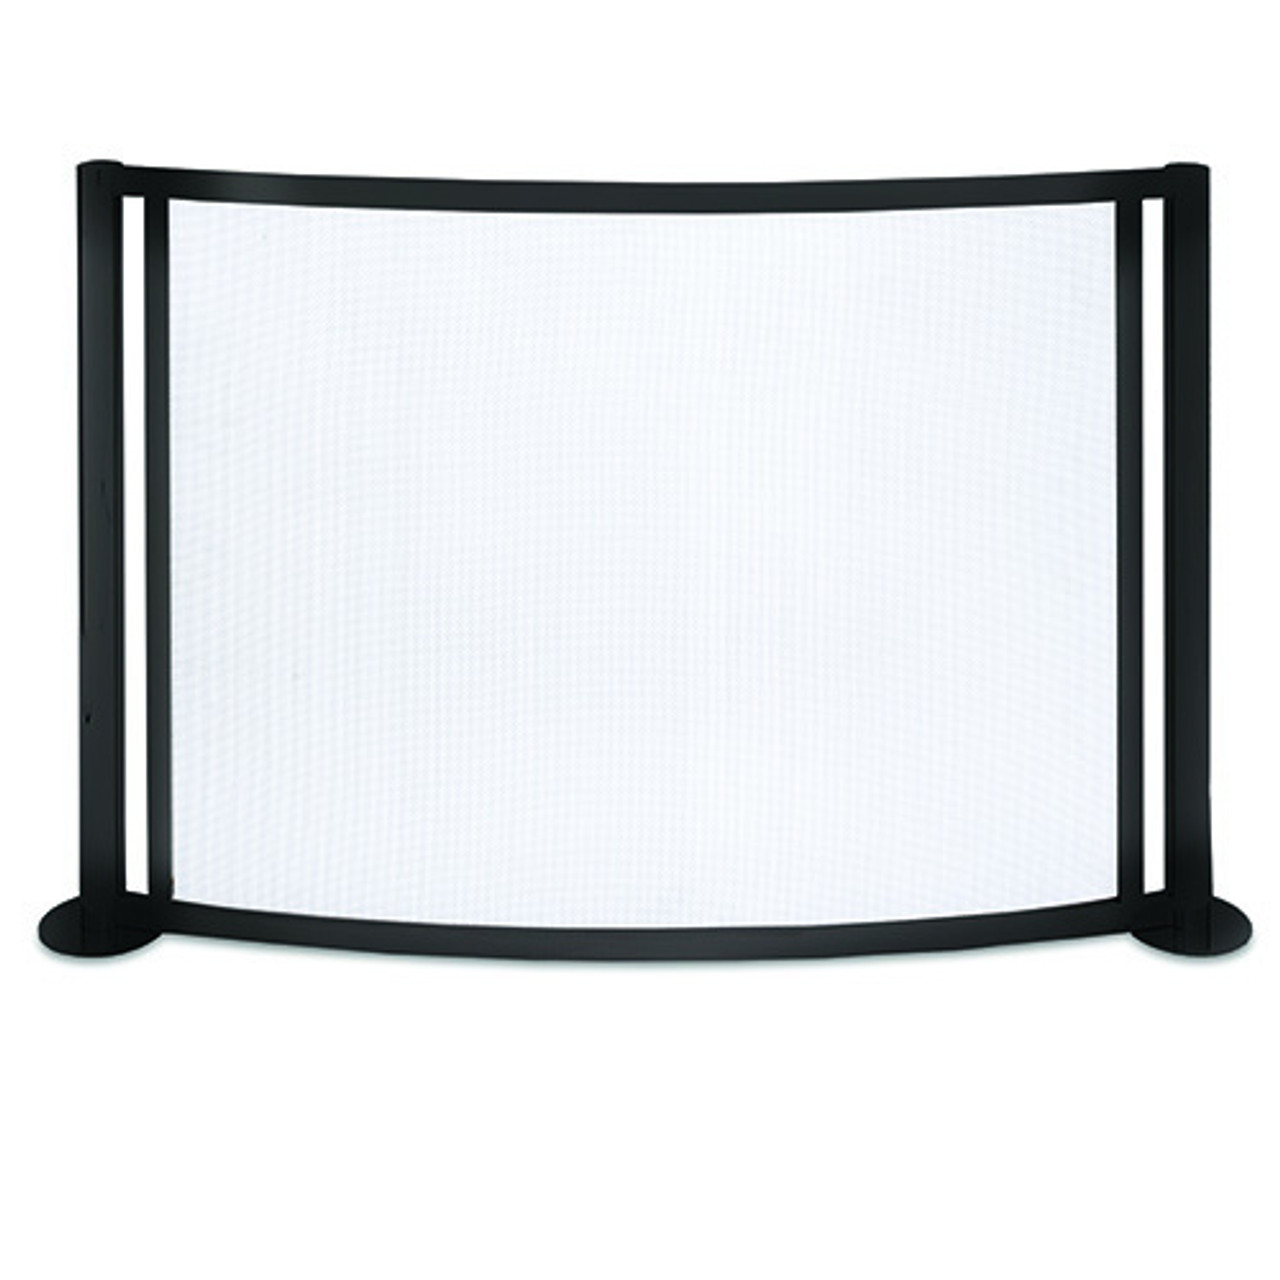 Pilgrim fireplace screen